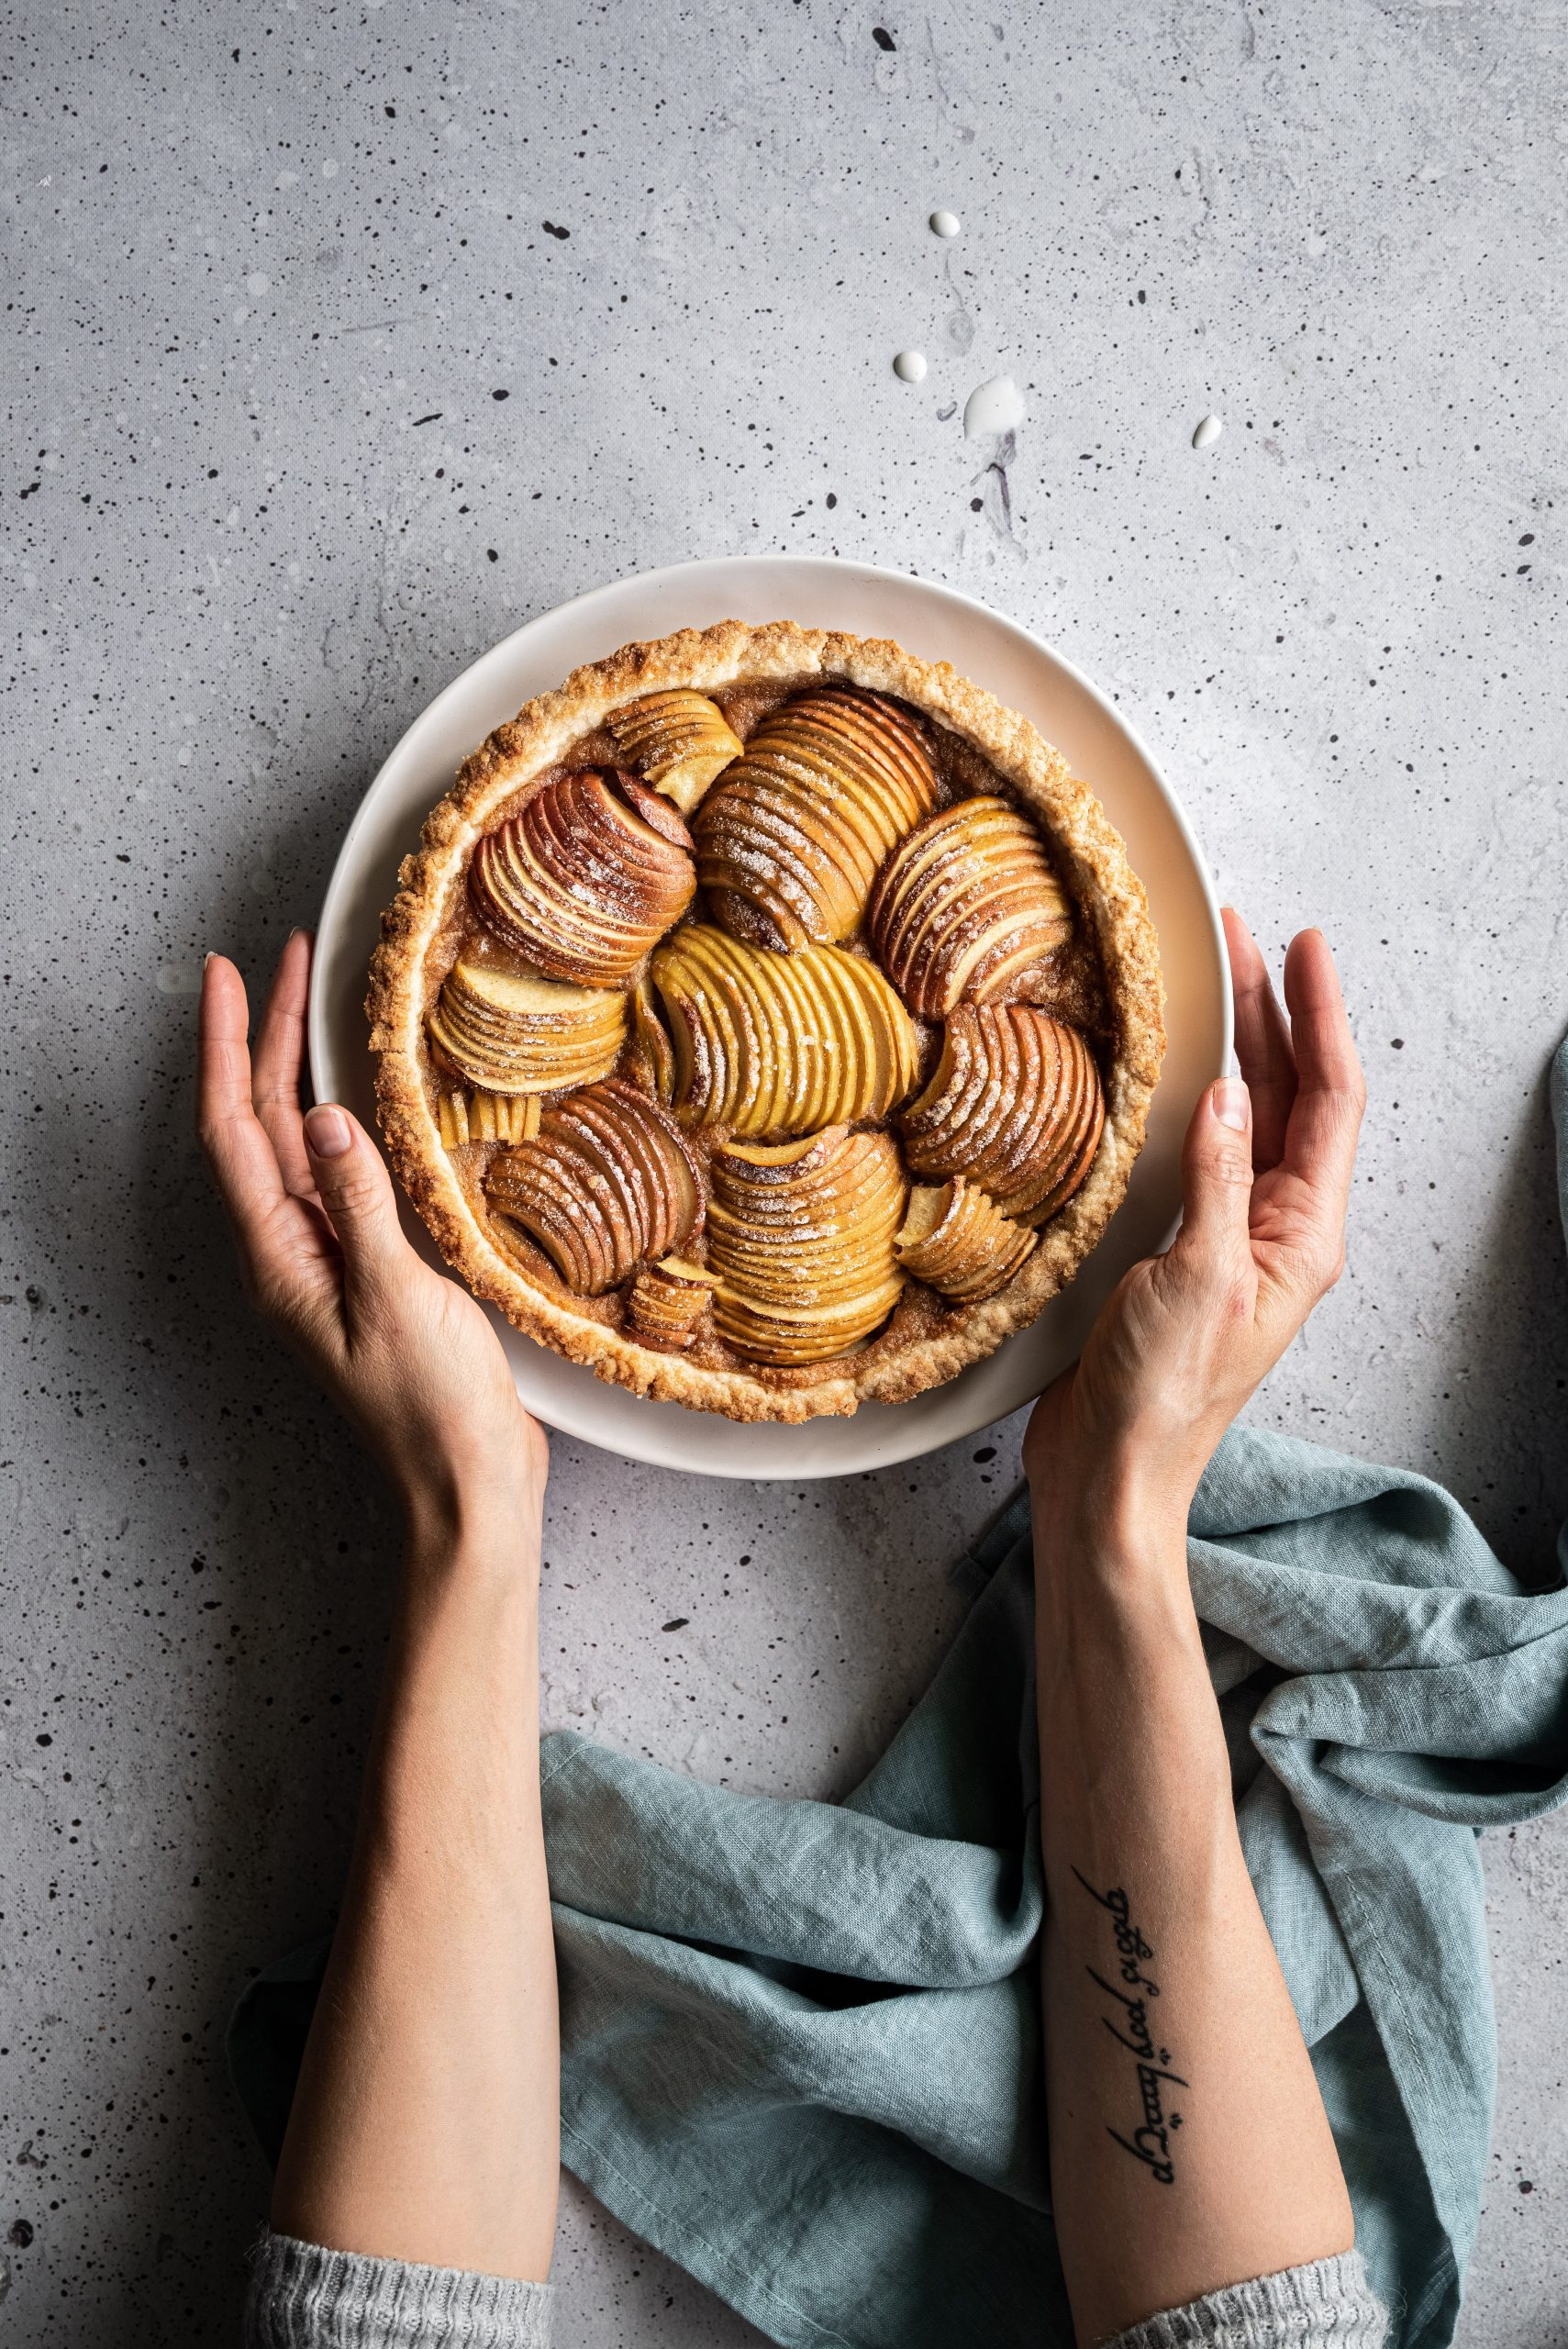 overhead image of a vegan french apple tart on a grey surface with two hands holding the tart and a blue linen on the bottom right.